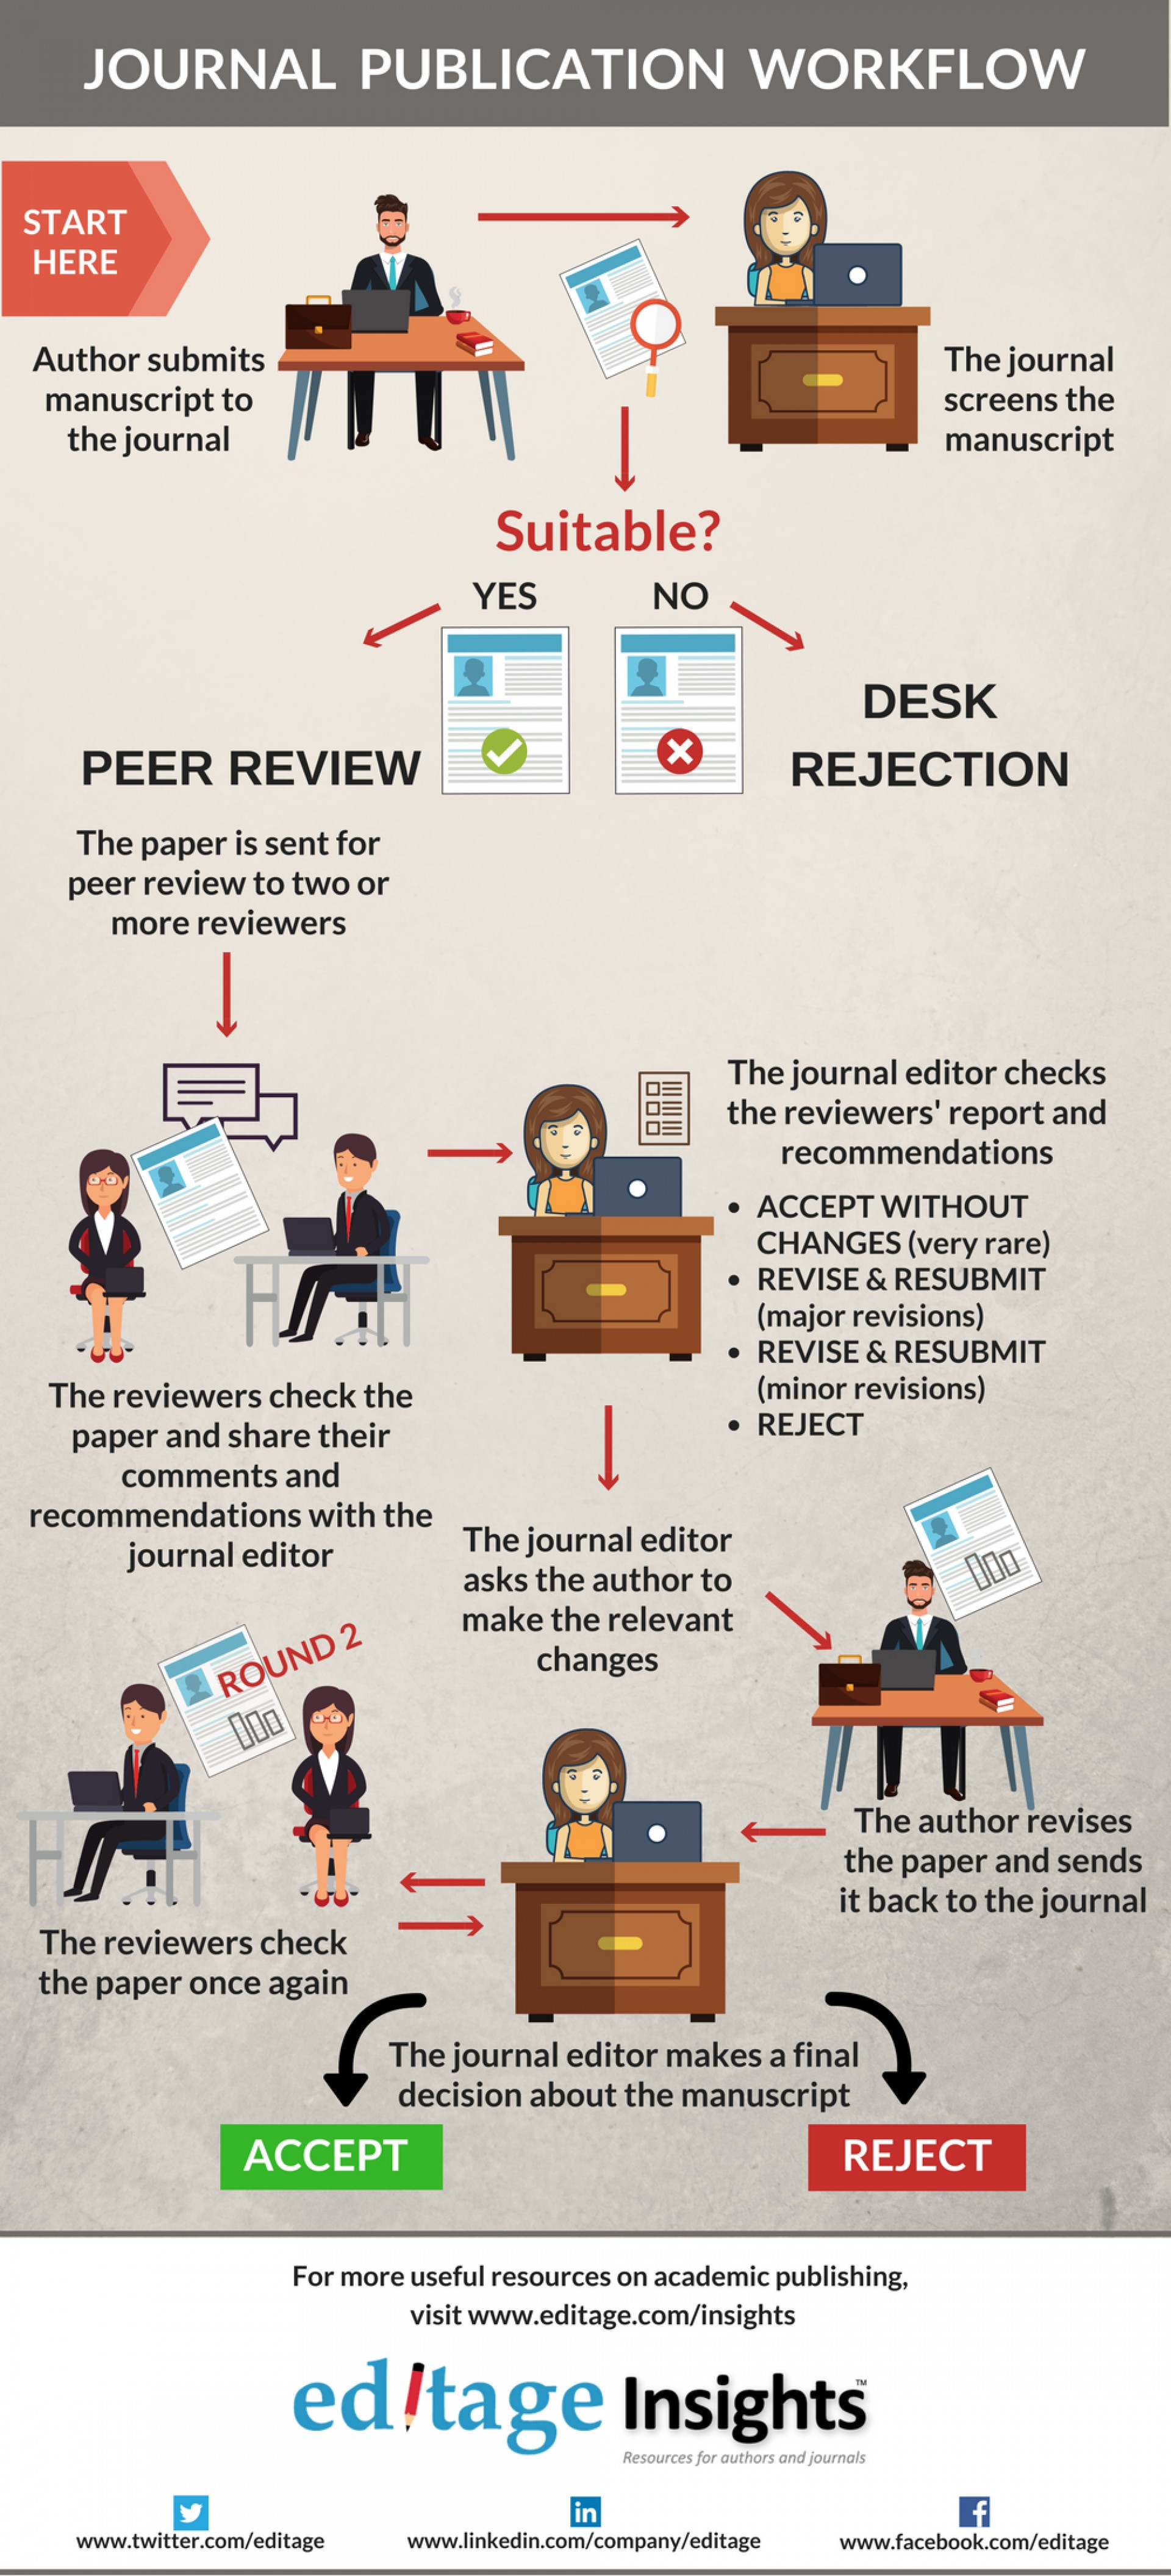 002 Journal Publishing Workflow Journals To Publish Researchs Beautiful Research Papers International Paper In India List Of Best 1920